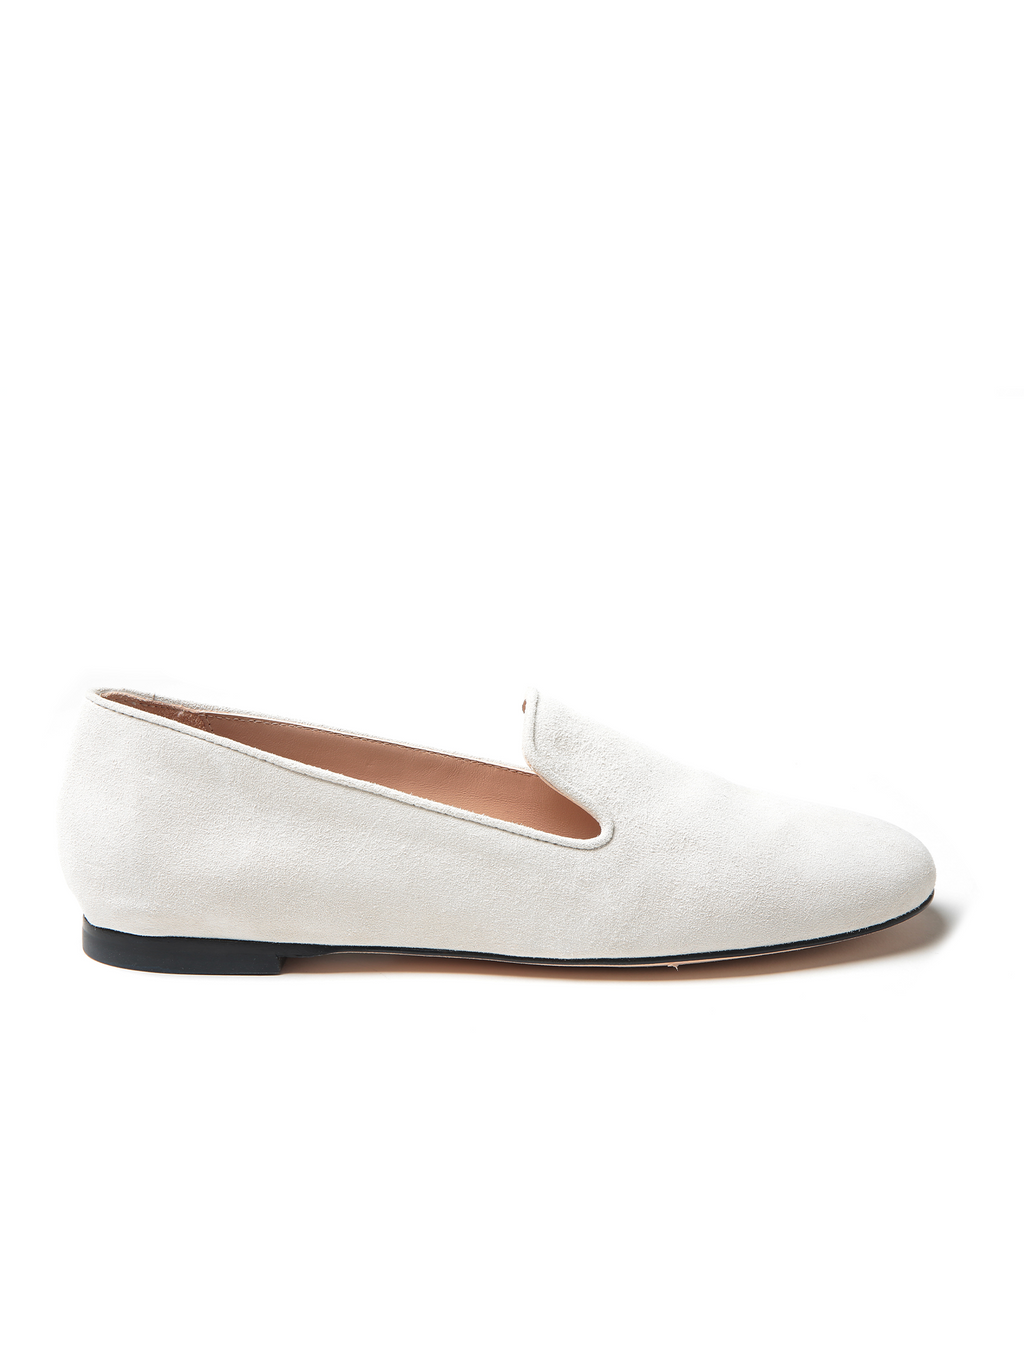 Stuart Weitzman My Guy Suede Loafer - Oyster